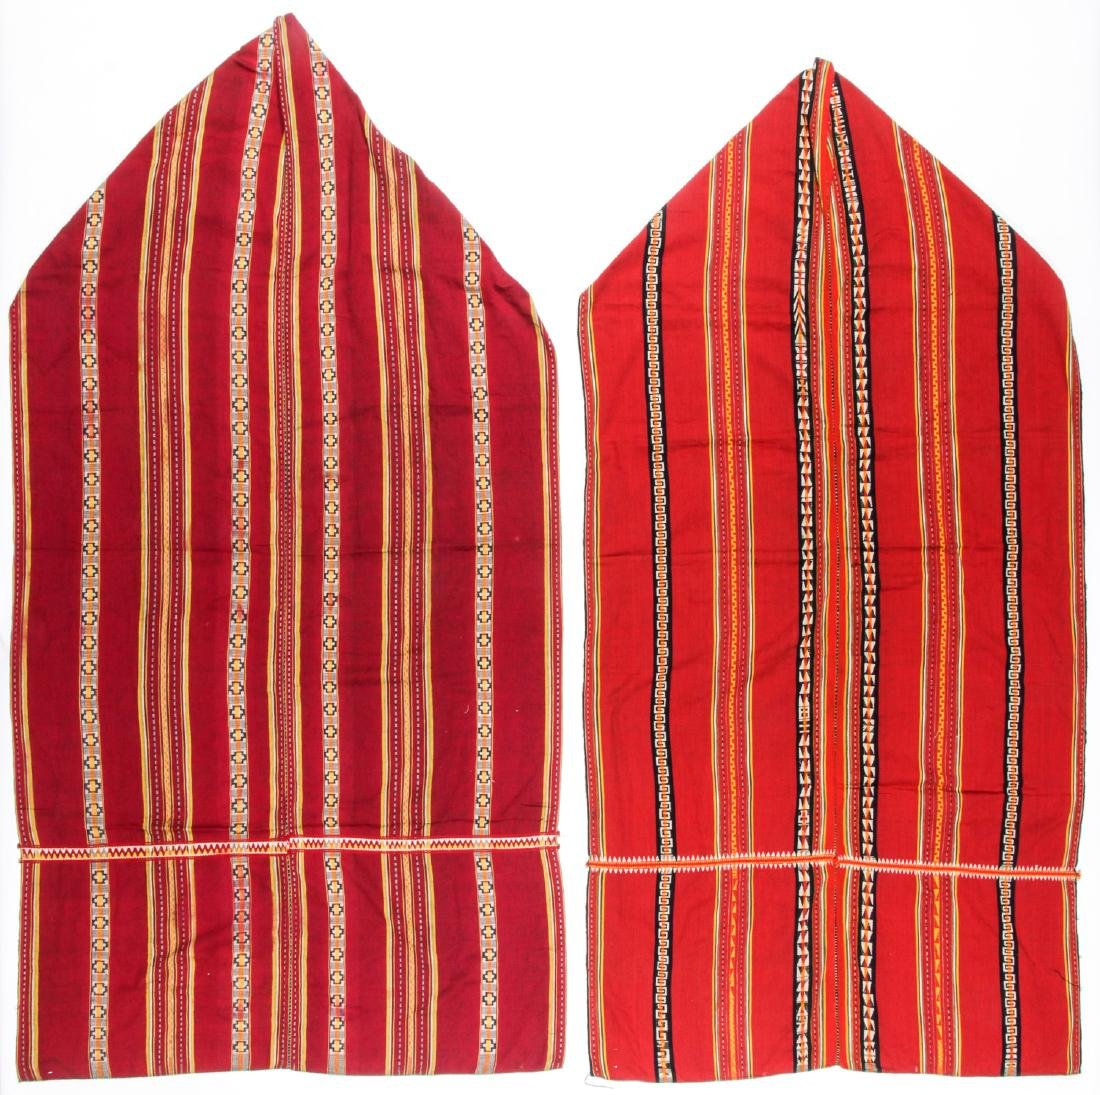 Pair of Long Woven Striped Textiles, Katu People, Laos